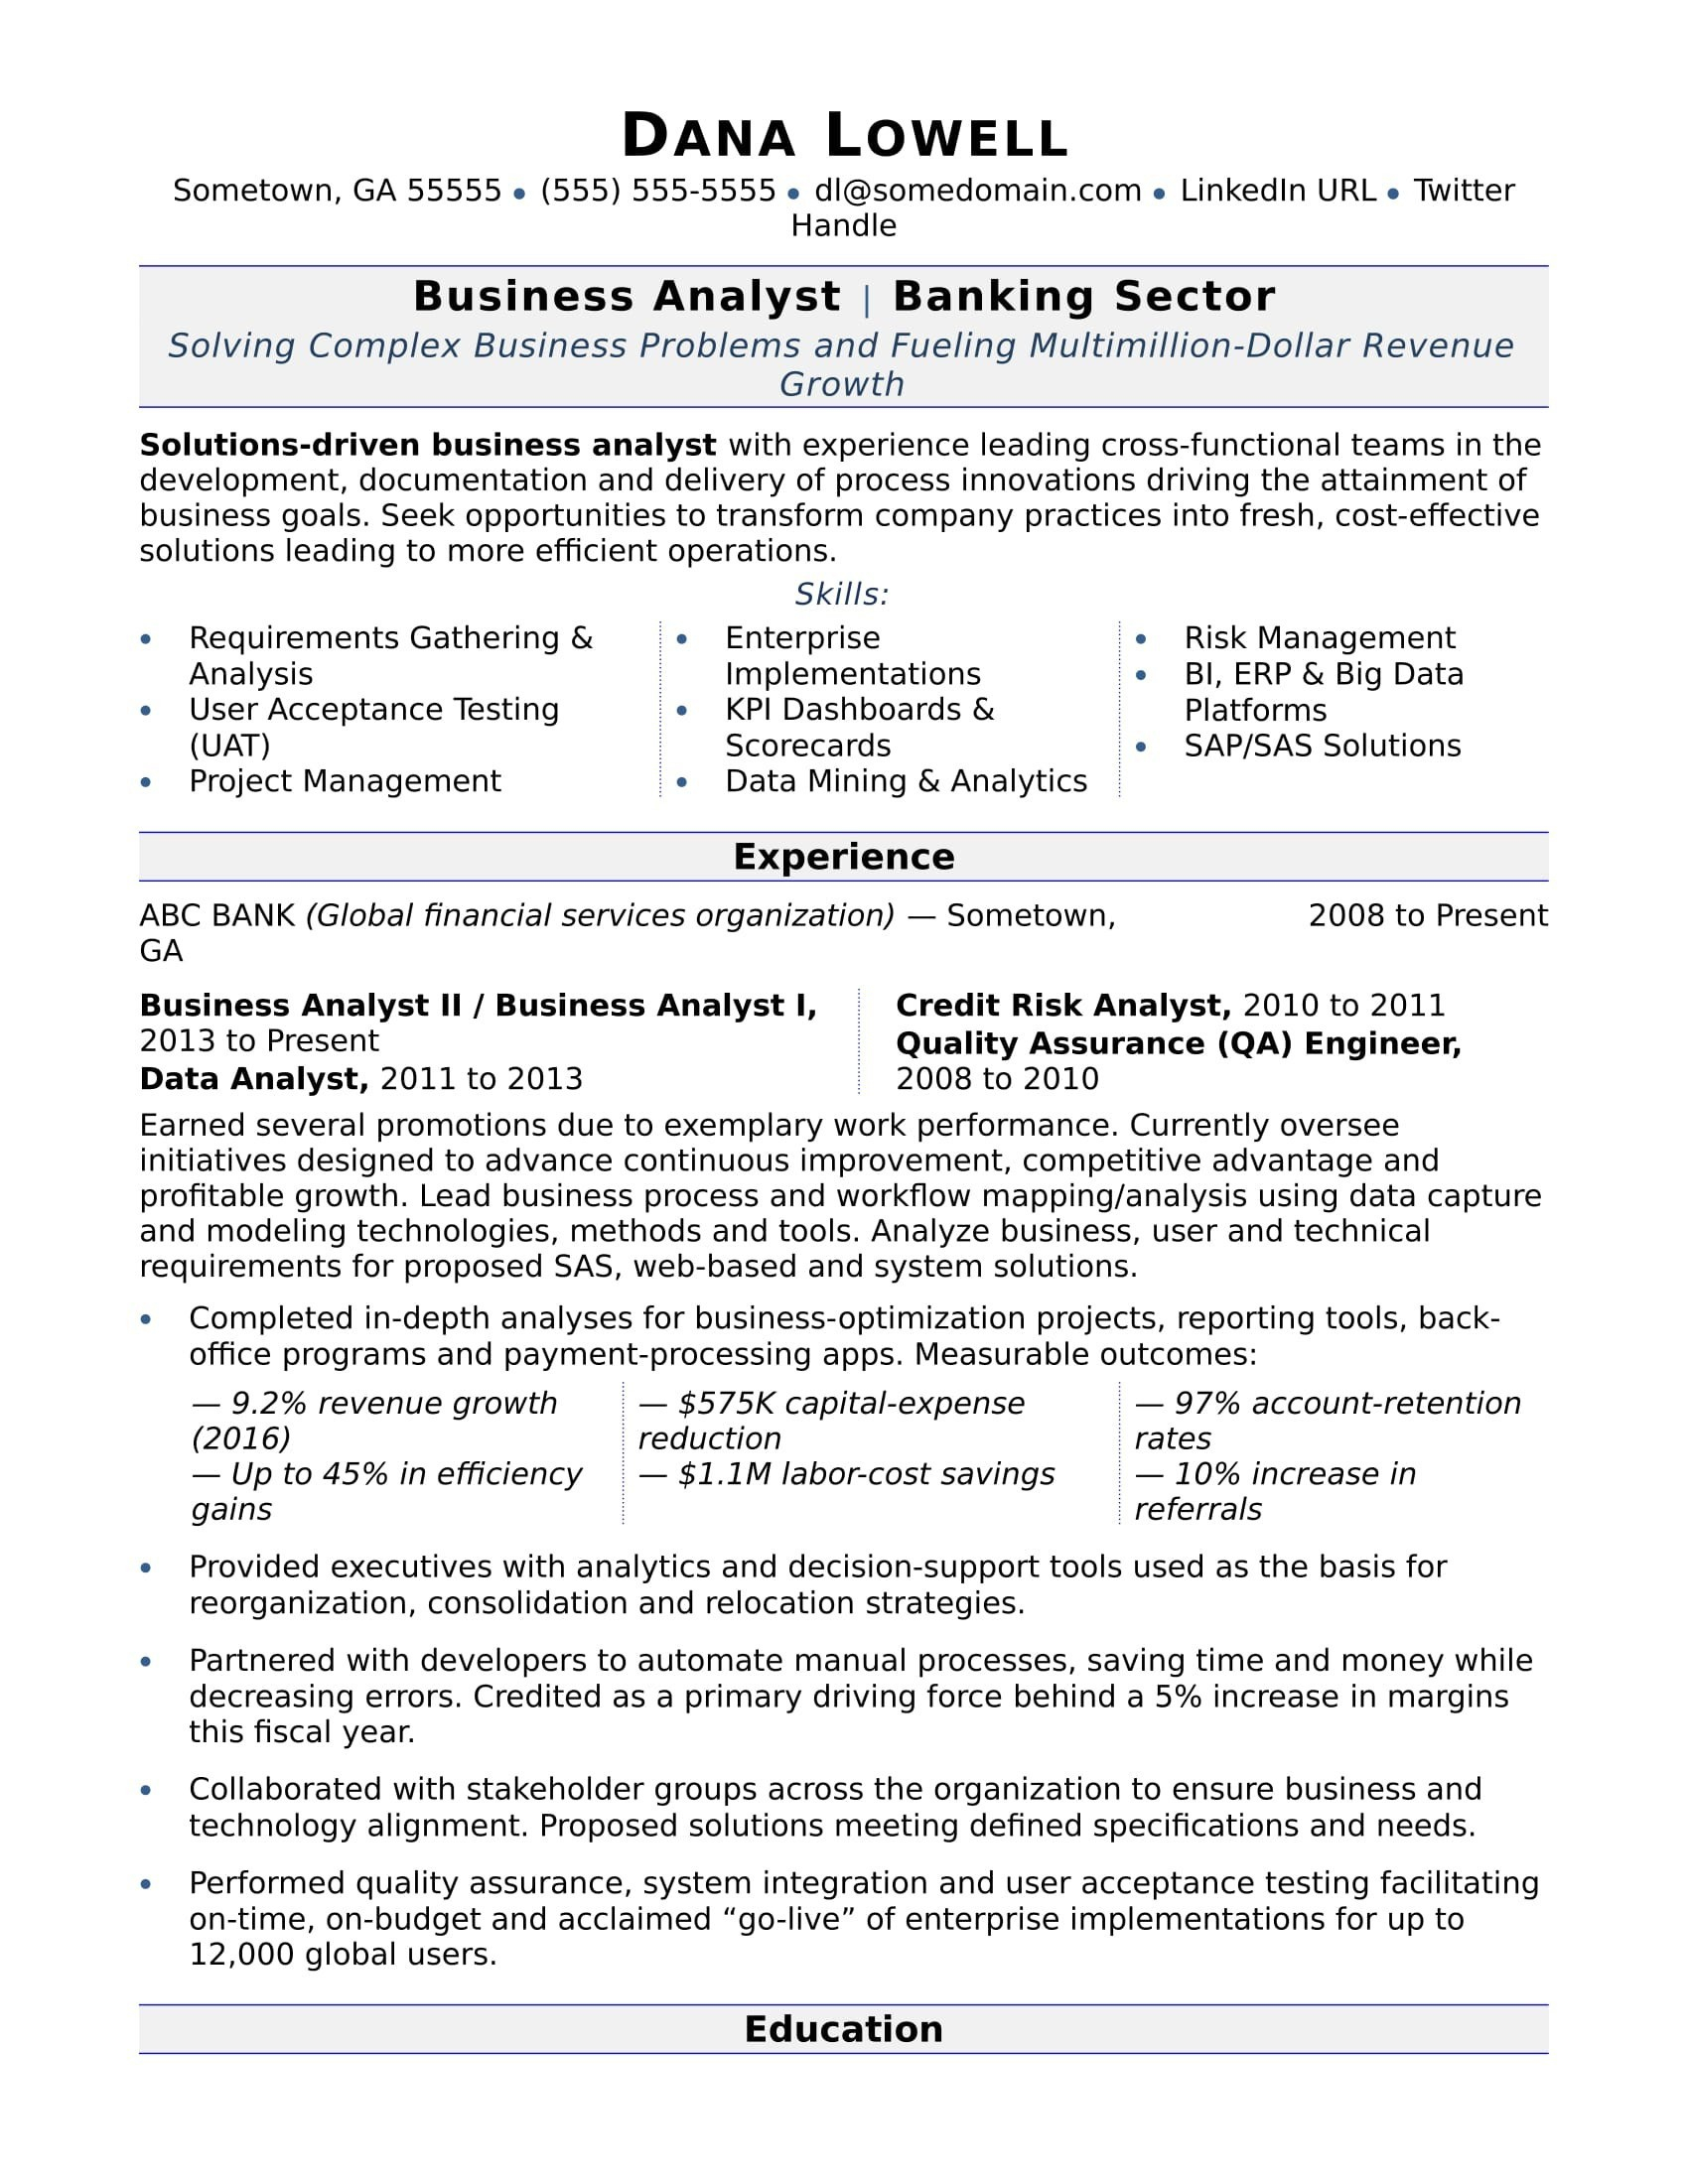 prep cook resume examples Collection-Line Cook Resume Inspirational Cook Resume Beautiful Resume Portfolio Examples Fresh Bsw Resume 0d 19 9-k